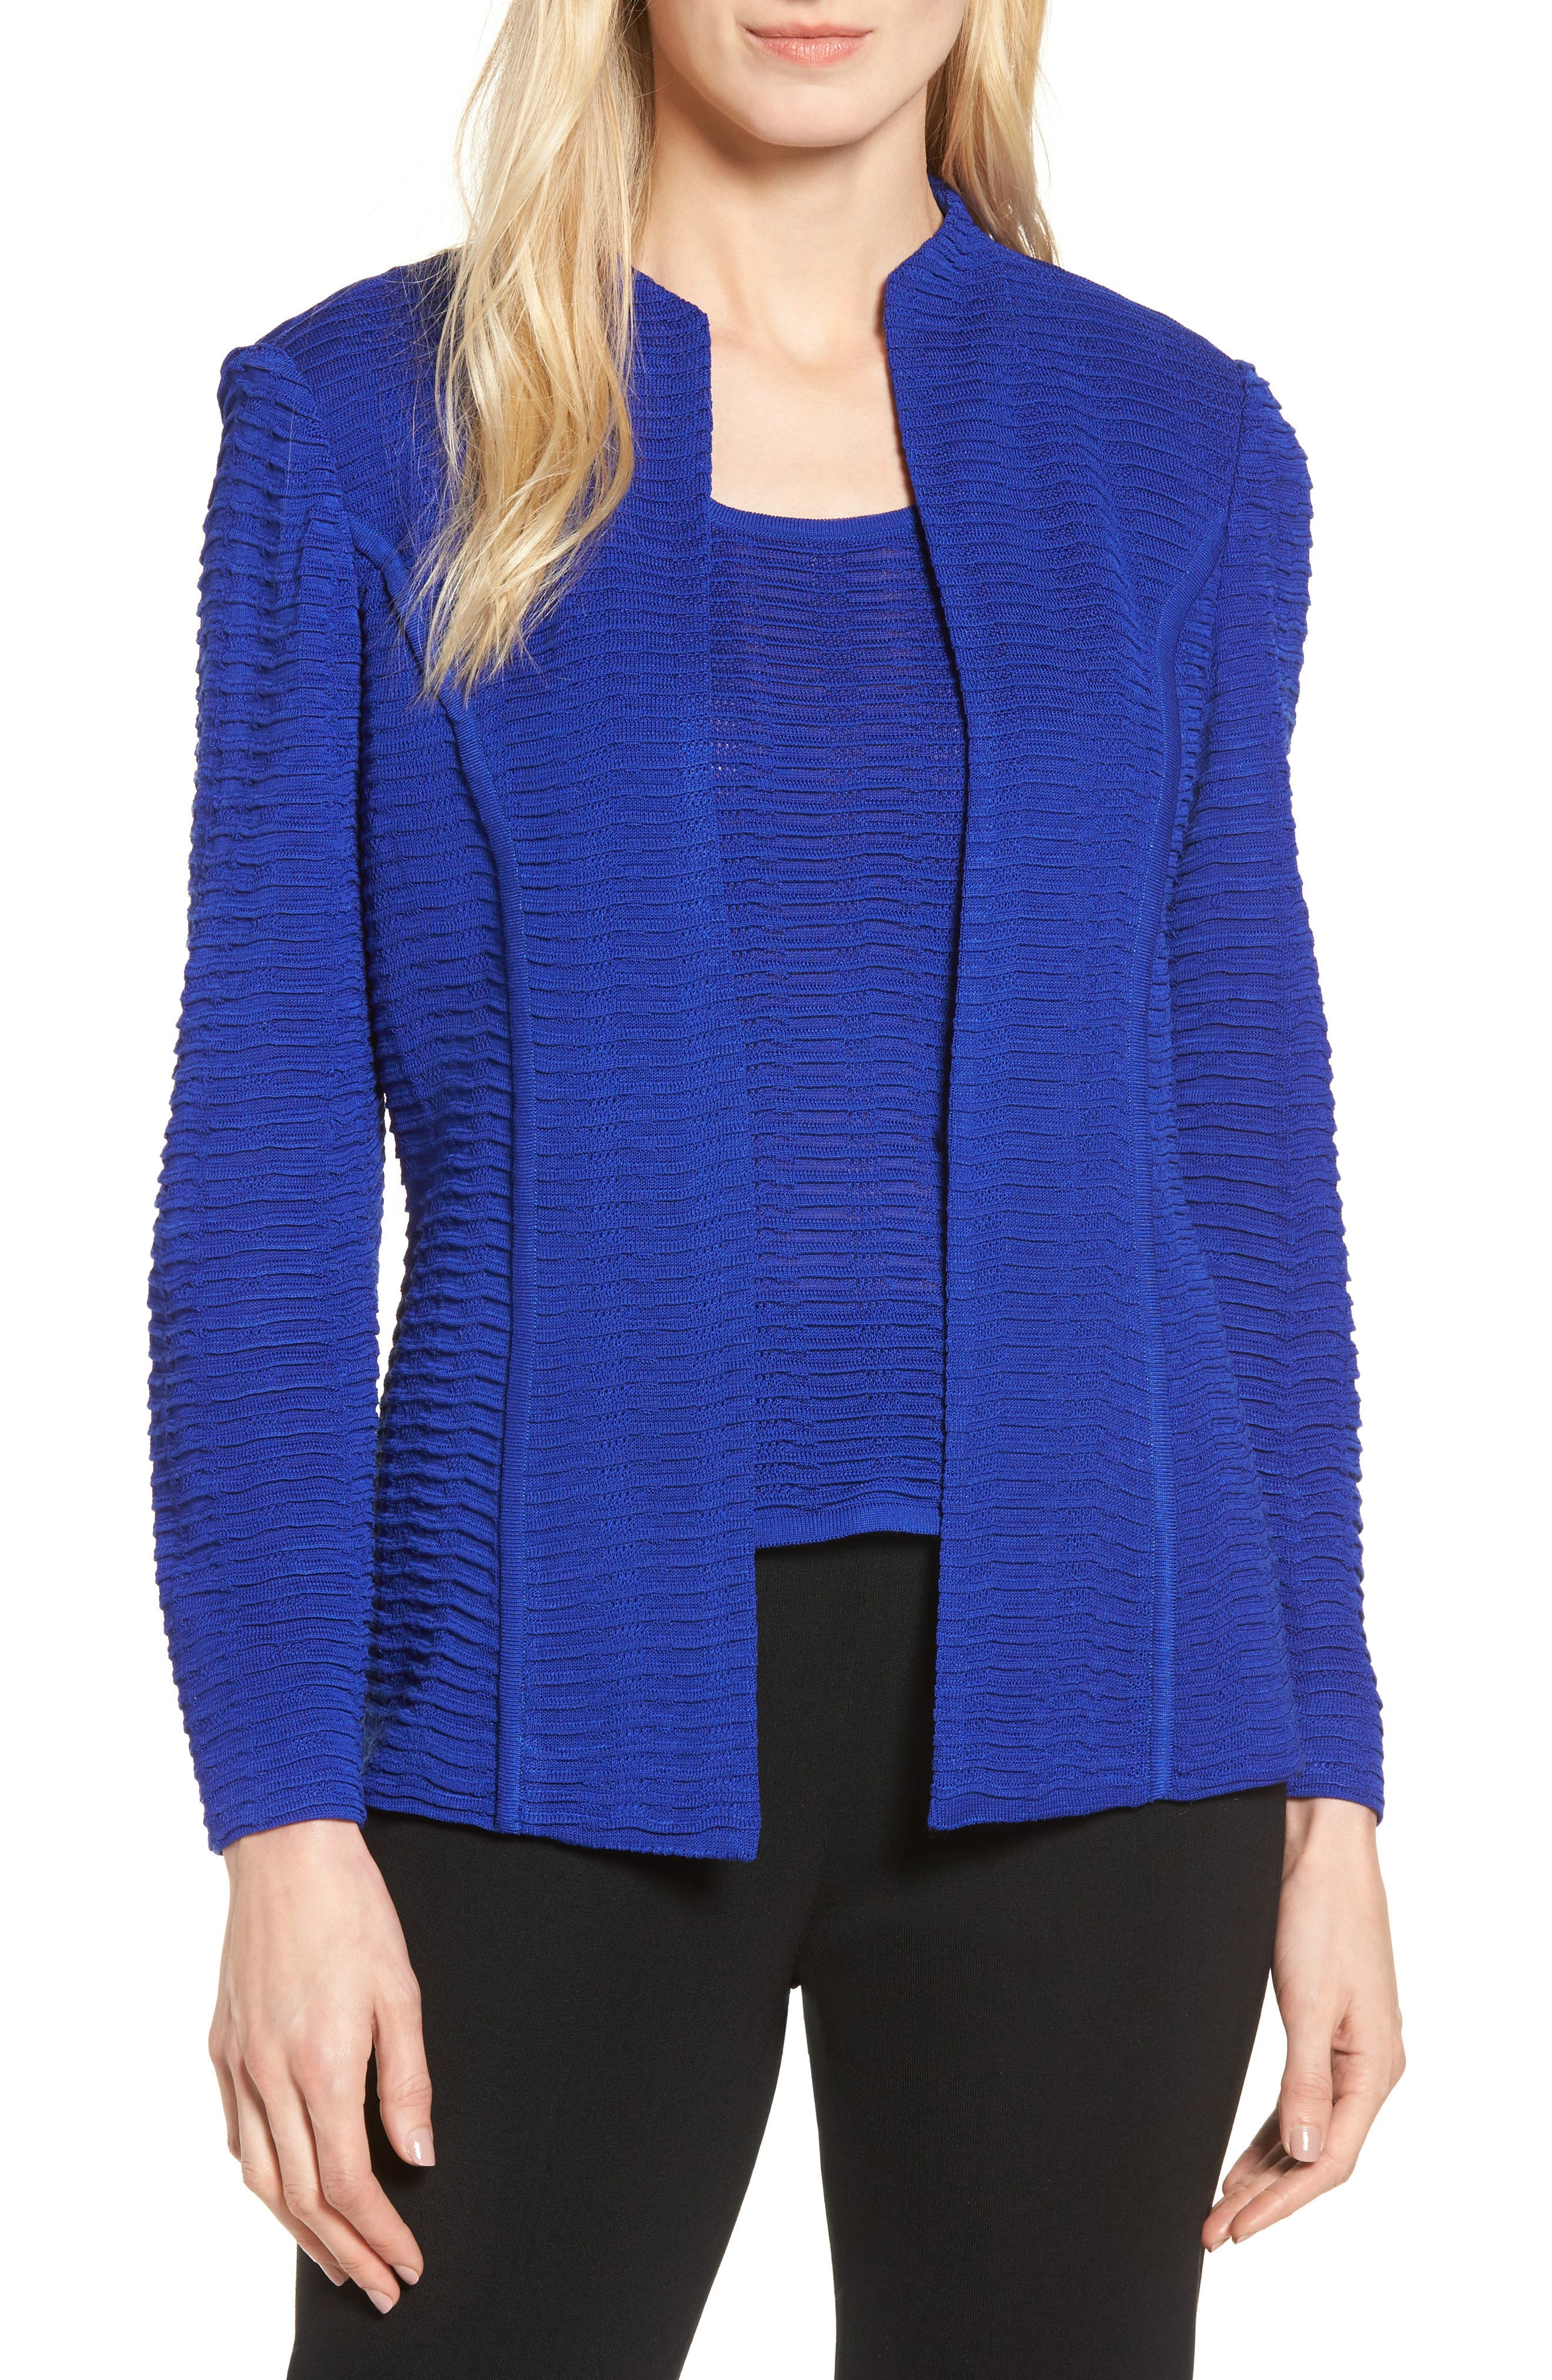 Ripple Knit Jacket,                         Main,                         color, Blue Flame